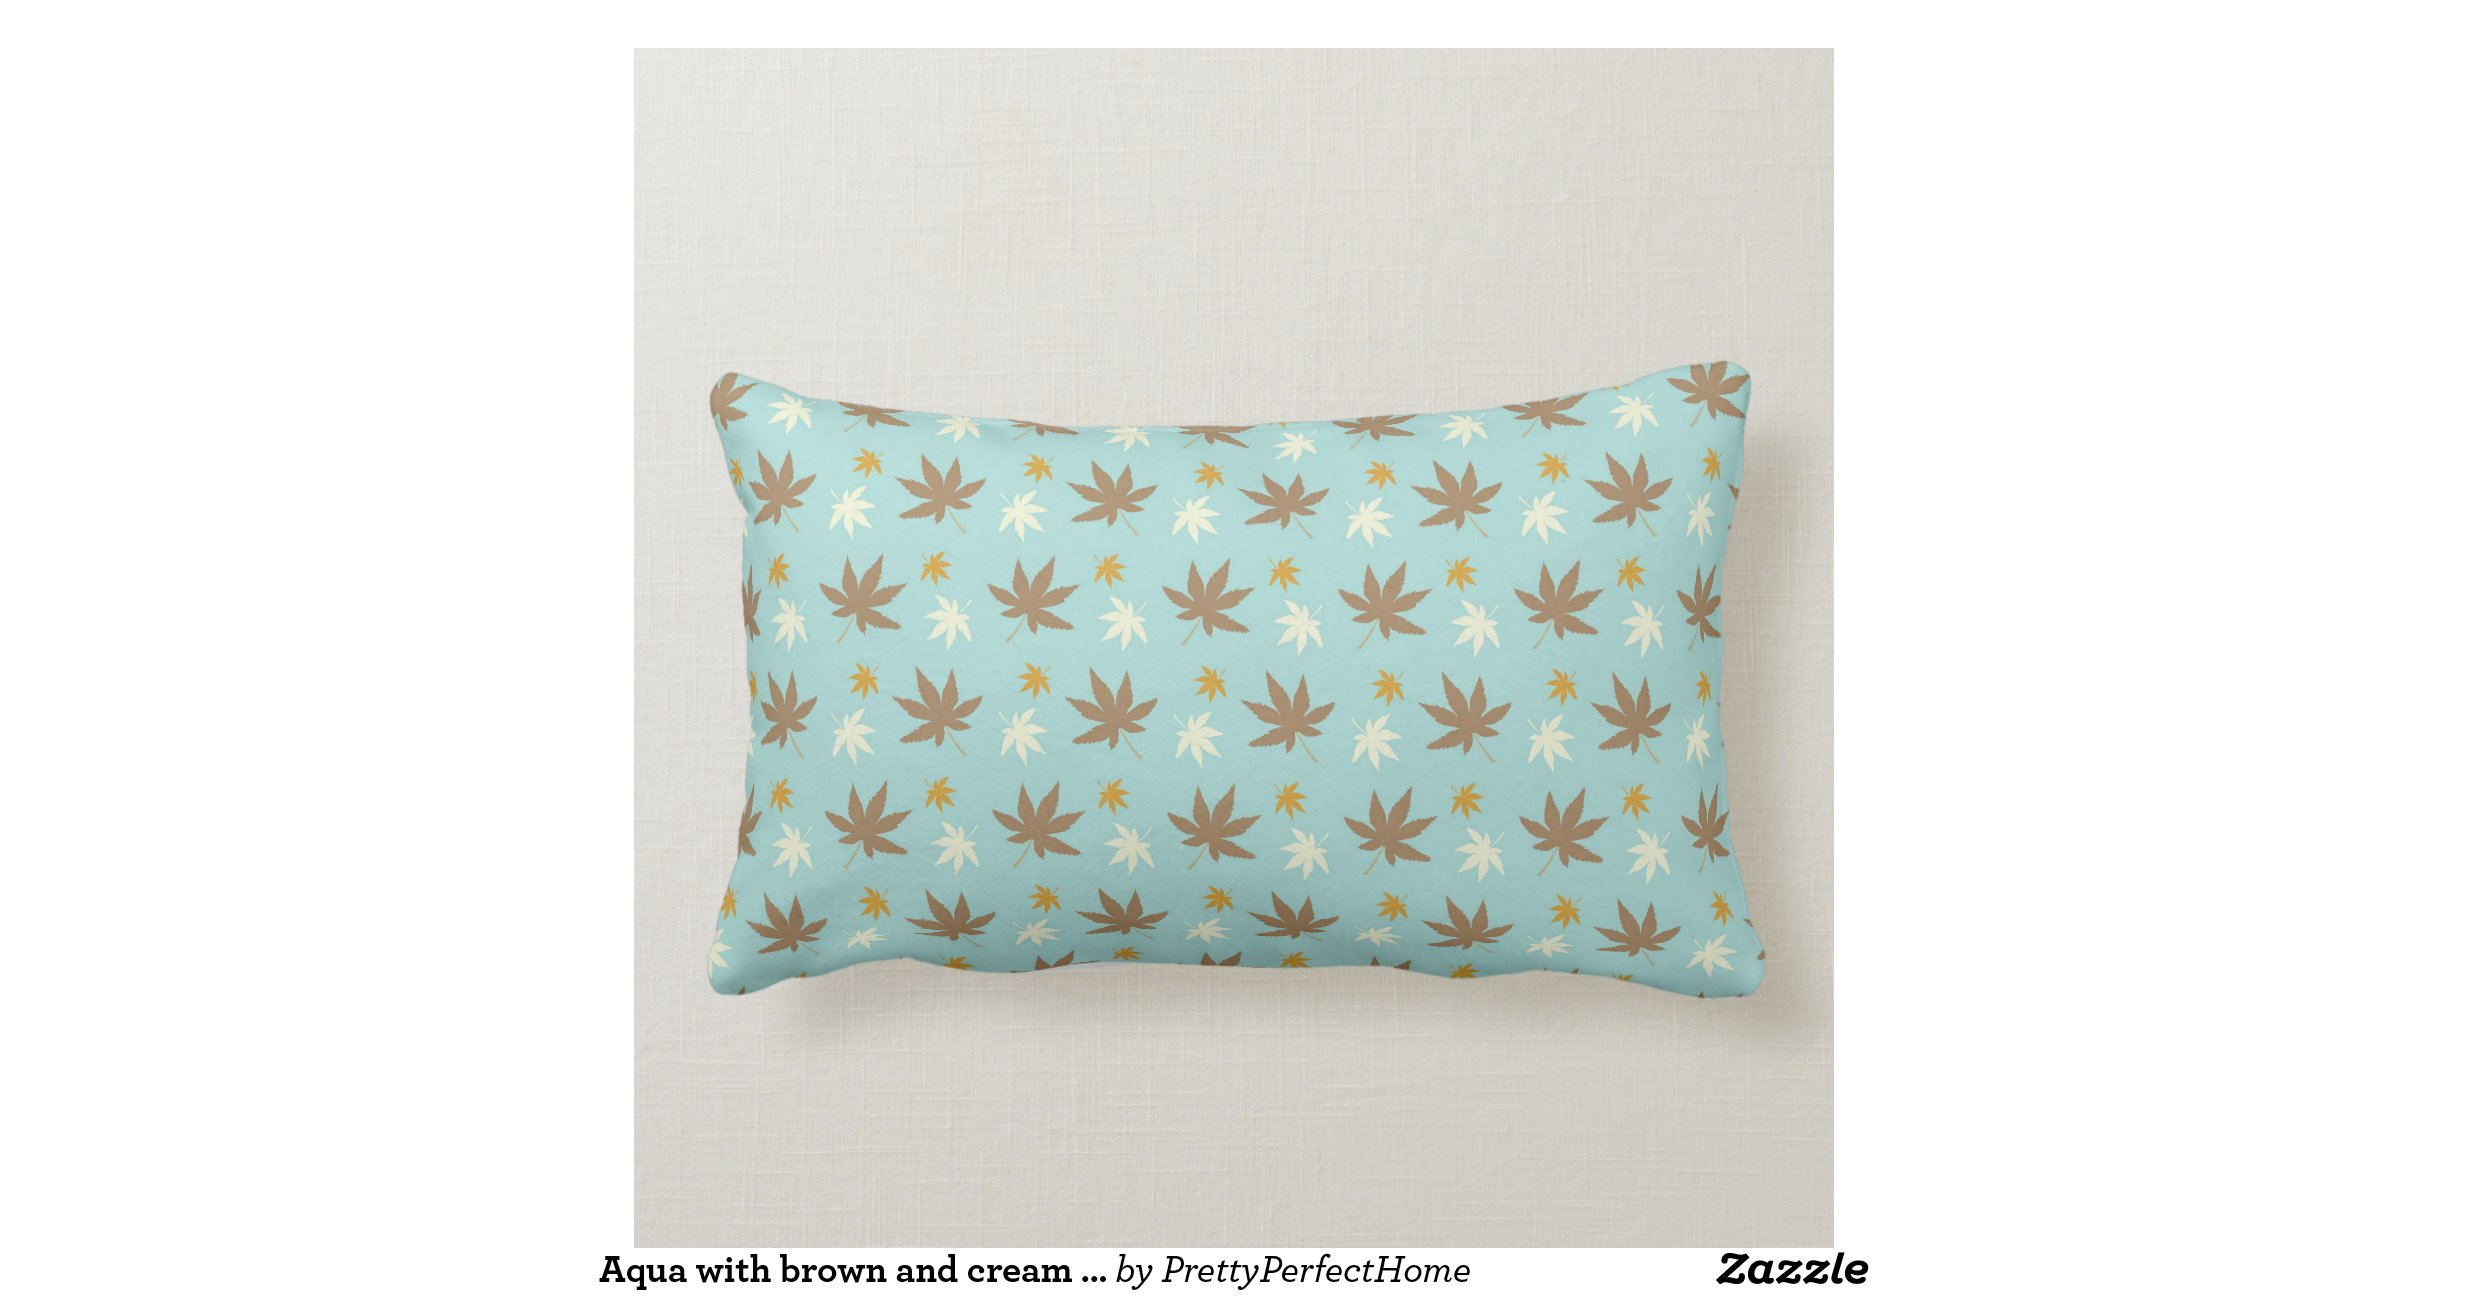 Throw Pillows Cream : Aqua with brown and cream leaves throw pillow Zazzle